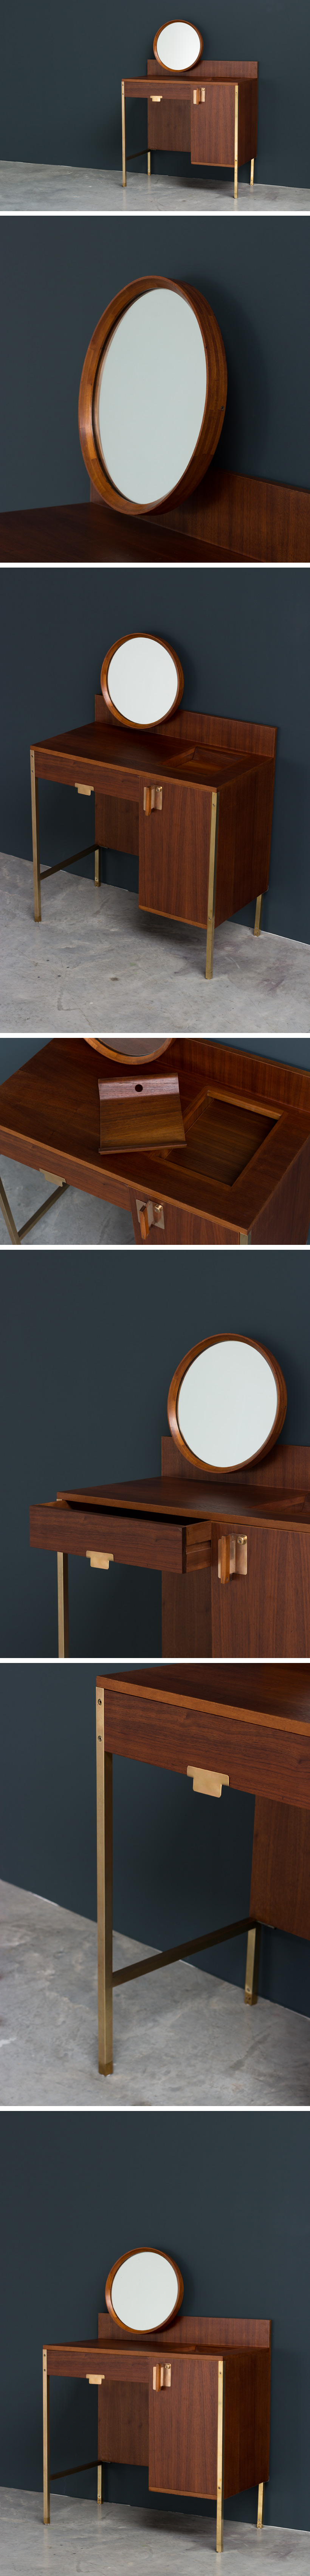 Ico Parisi Make Up table from the Positano series MIM Roma Large